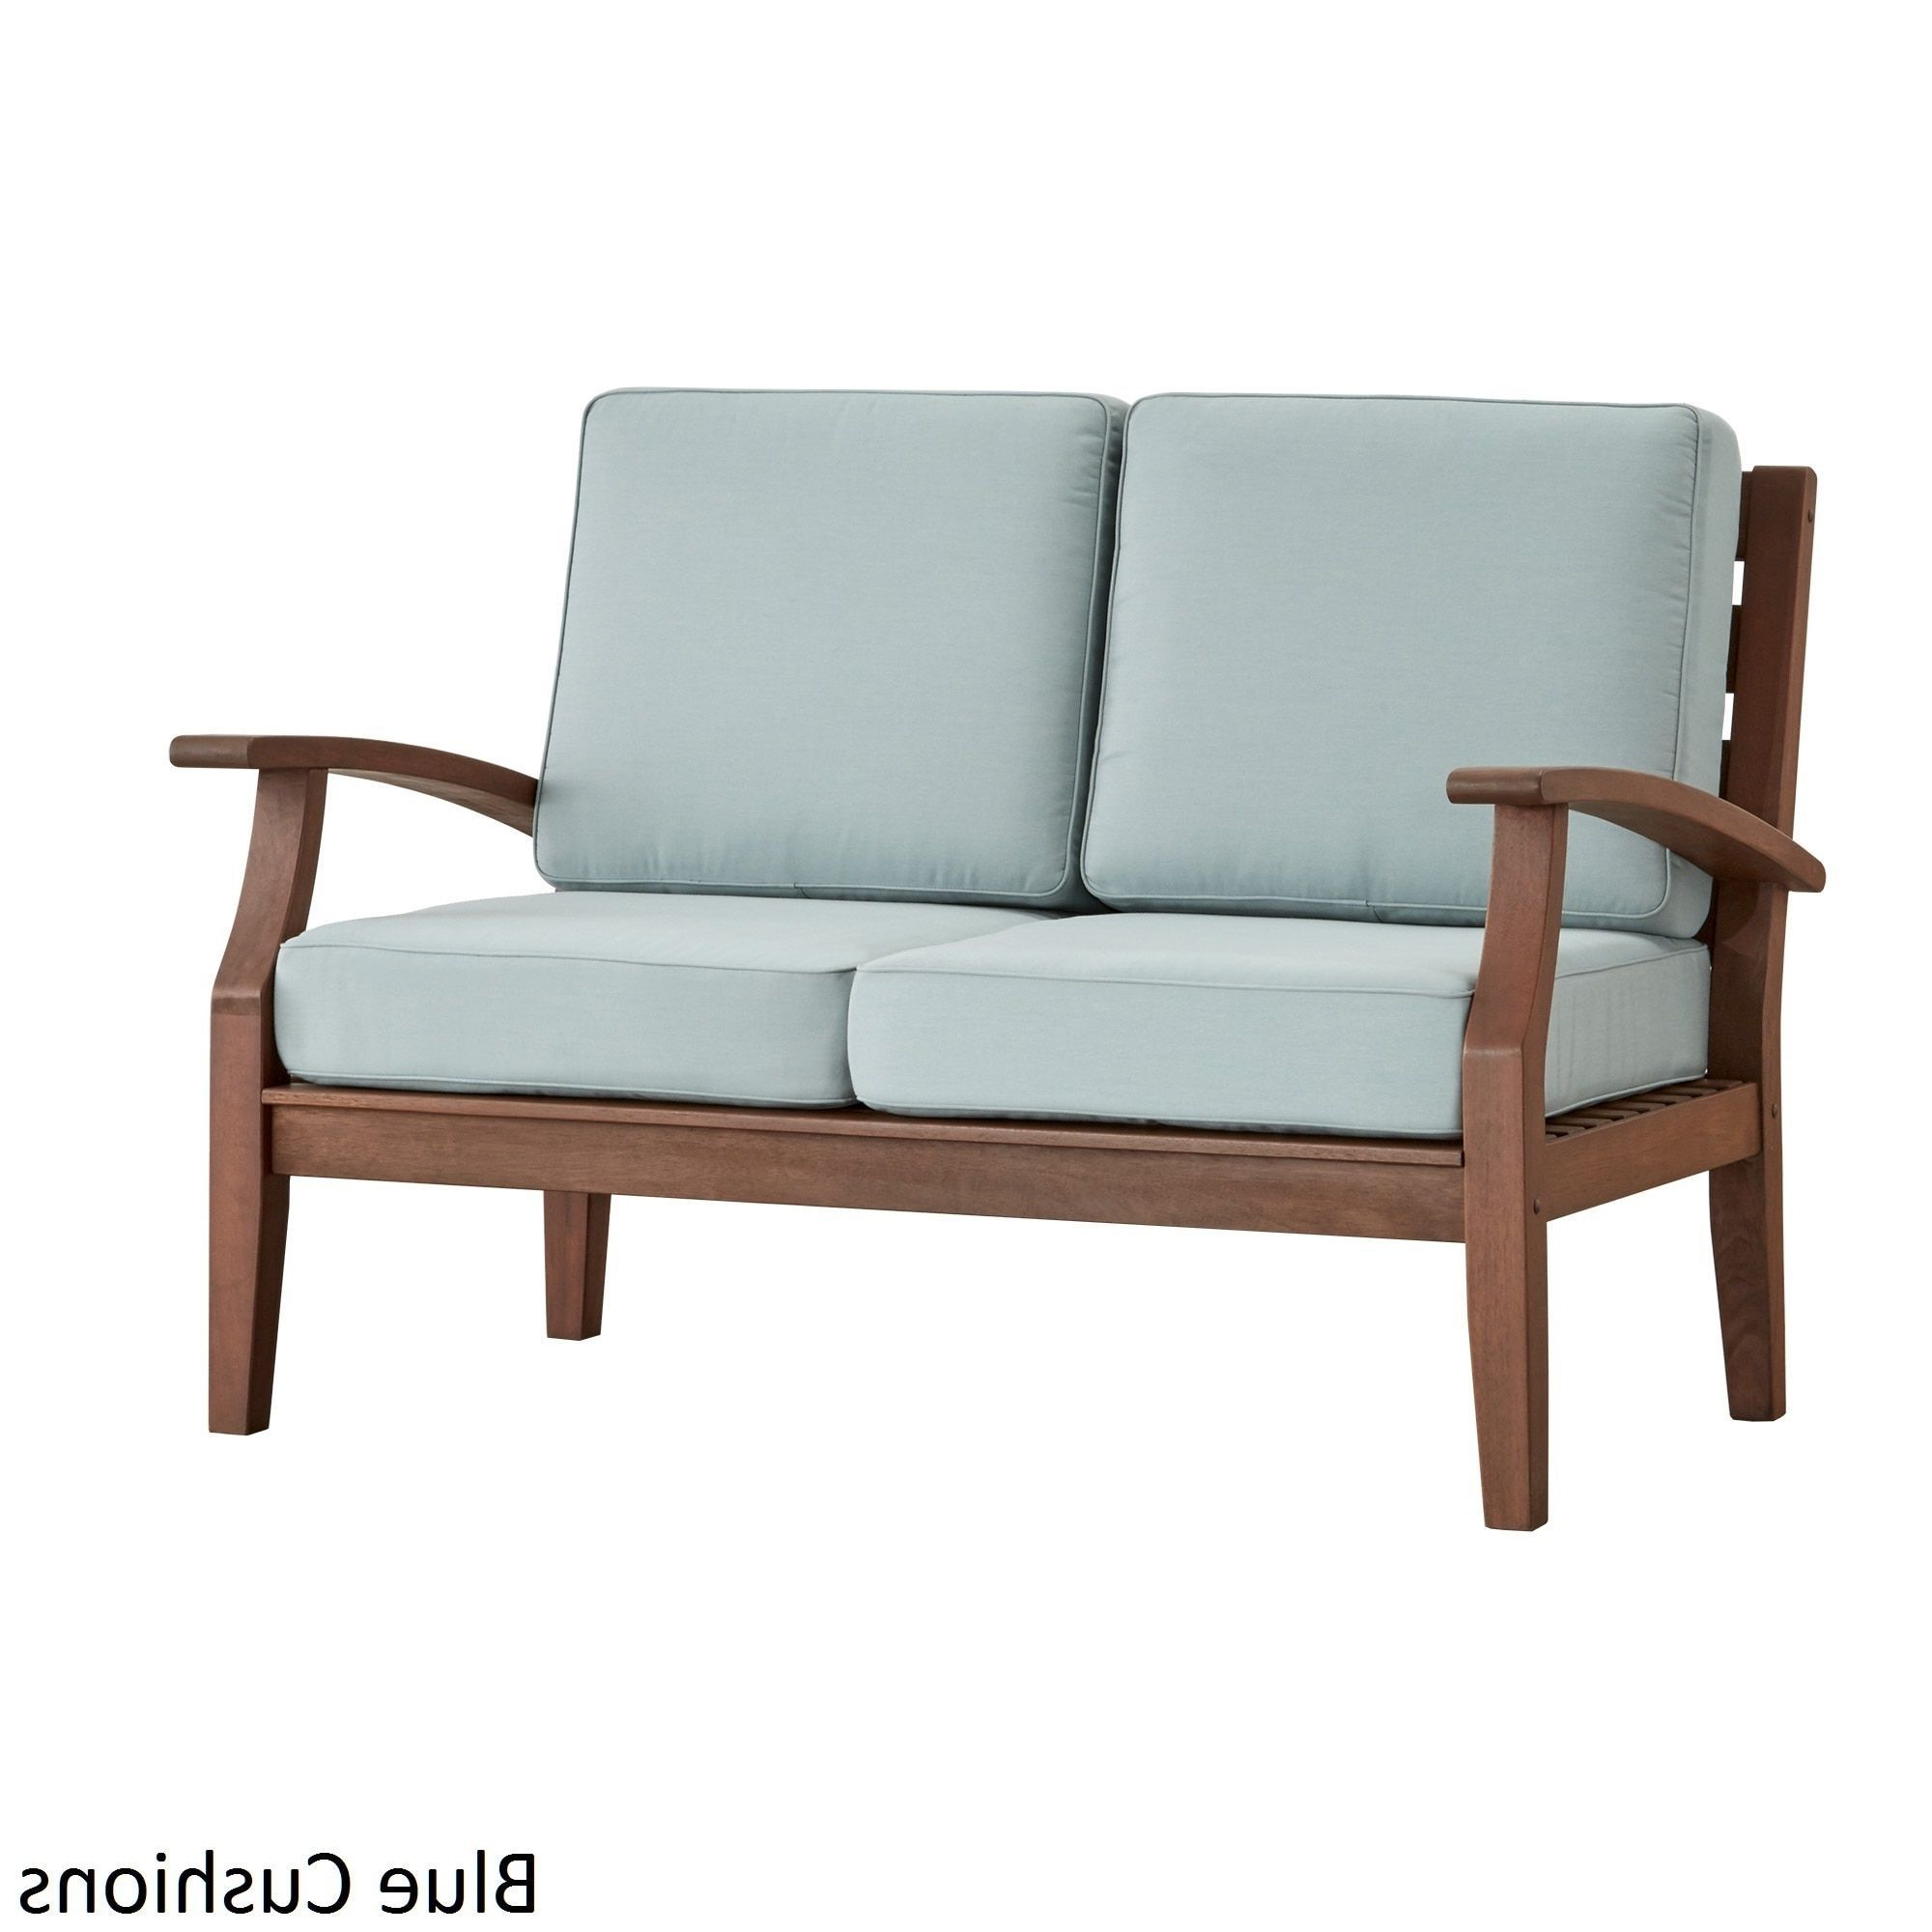 Calvin Patio Loveseats With Cushions Regarding Most Up To Date Yasawa Brown Modern Outdoor Cushioned Wood Loveseat Inspire (View 11 of 20)